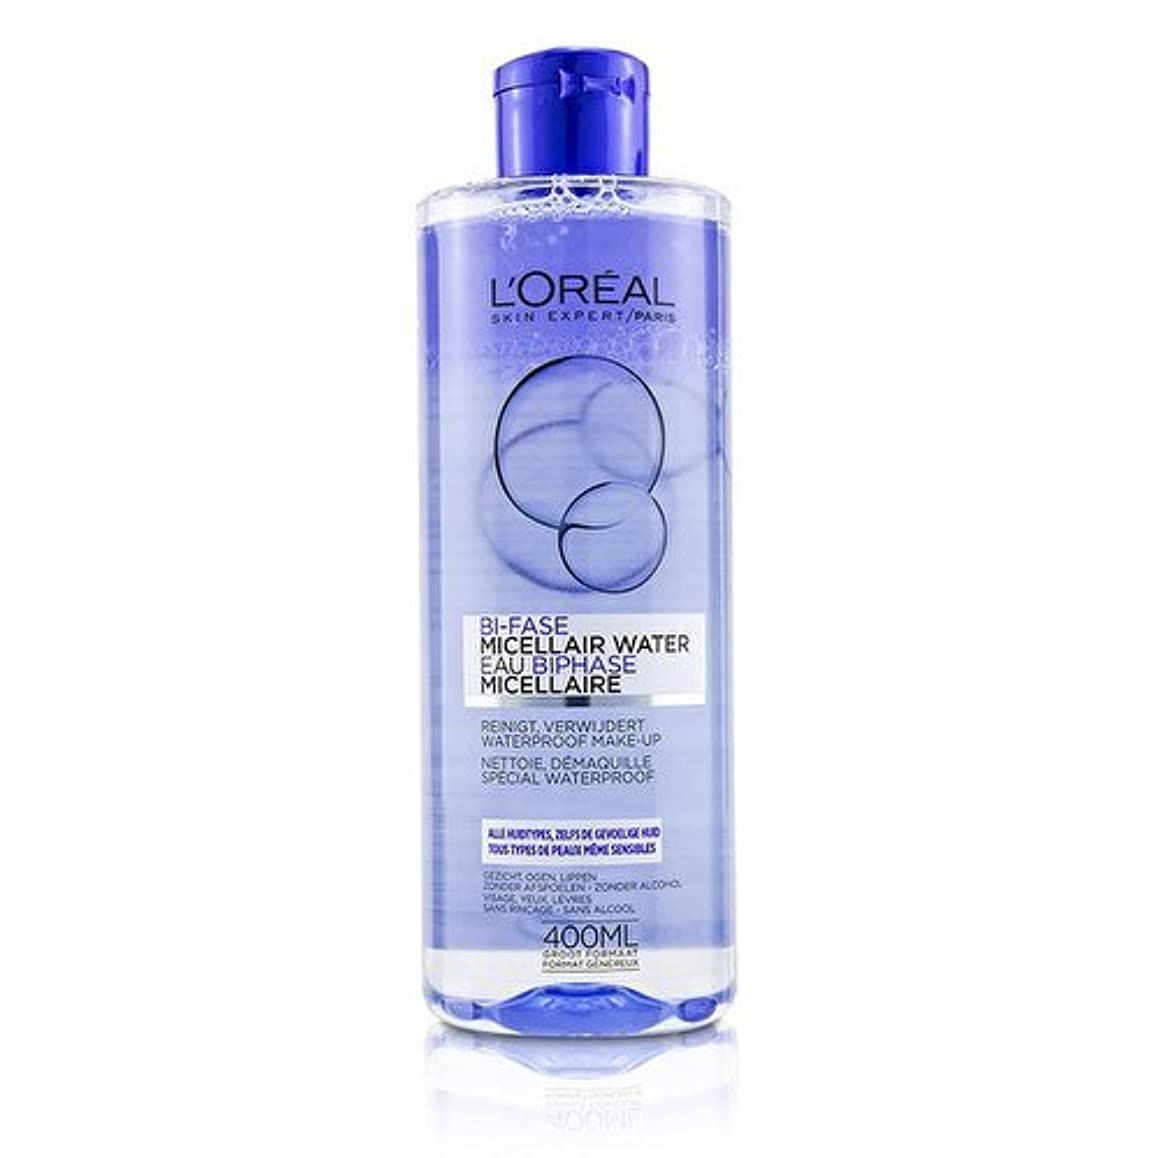 腫瘍ブローホール一見ロレアル Bi-Phase Micellar Water (Bi-Fase Micellair Water) - For All Skin Types, even Sensitive Skin 400ml/13.3oz並行輸入品